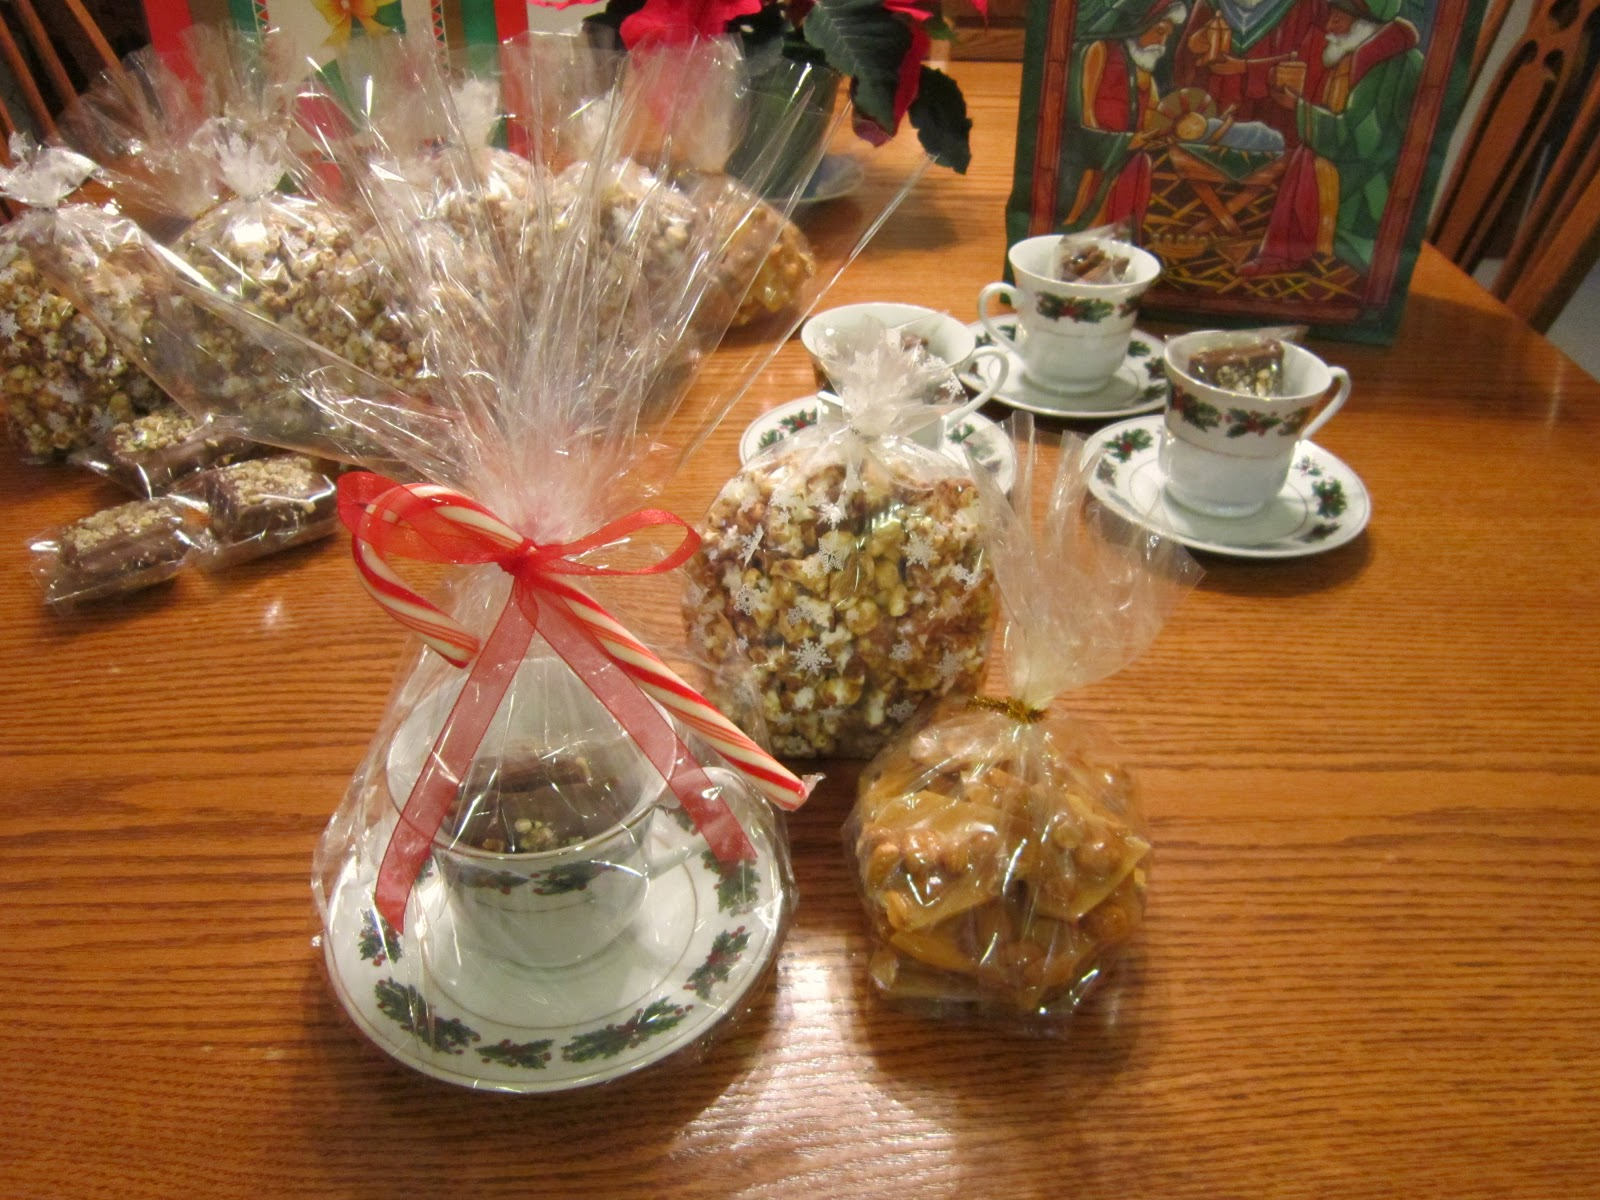 Relevant Tea Leaf: Christmas Gifts from the Kitchen